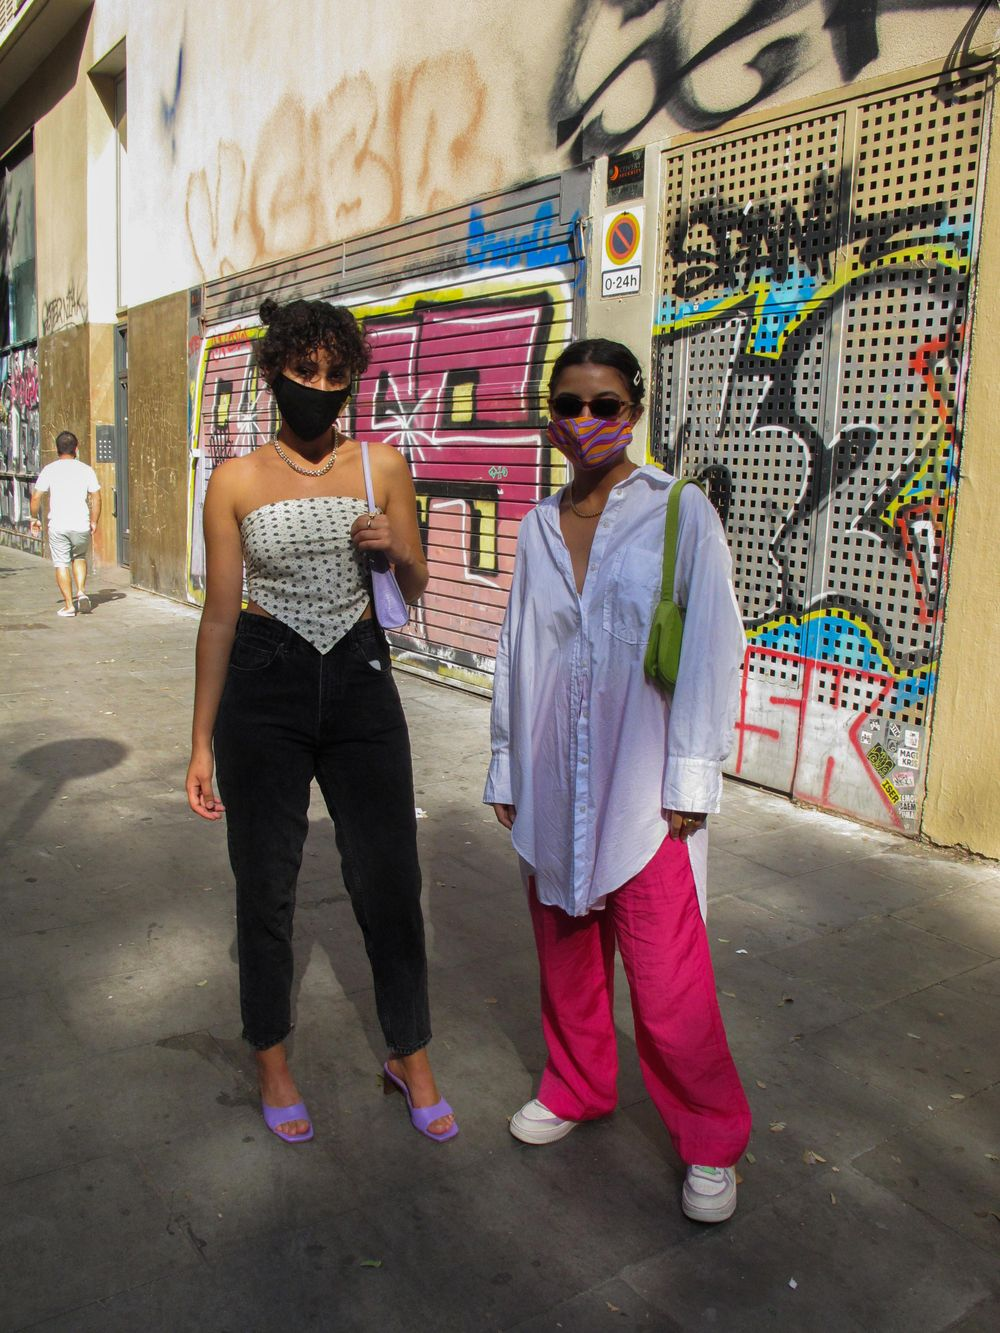 Street Fashion Barcelona (@adoquinculture) - image 1 - student project